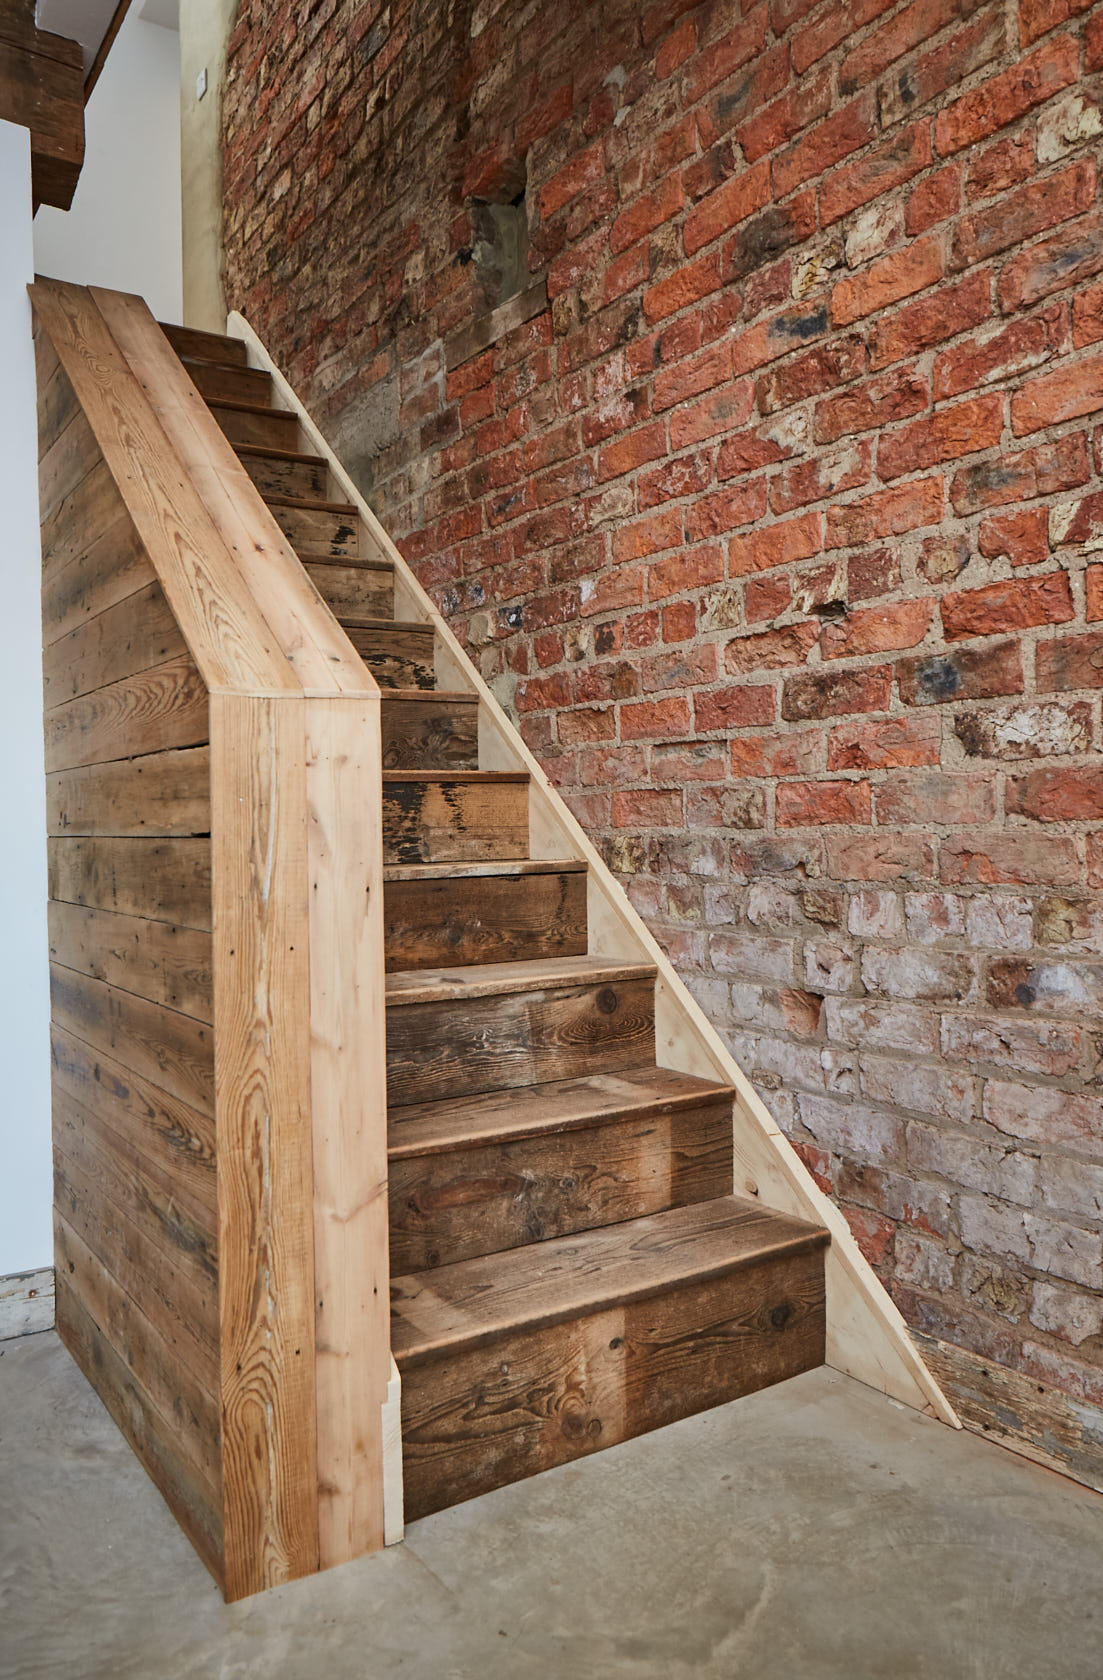 Staircase made from reclaimed wood